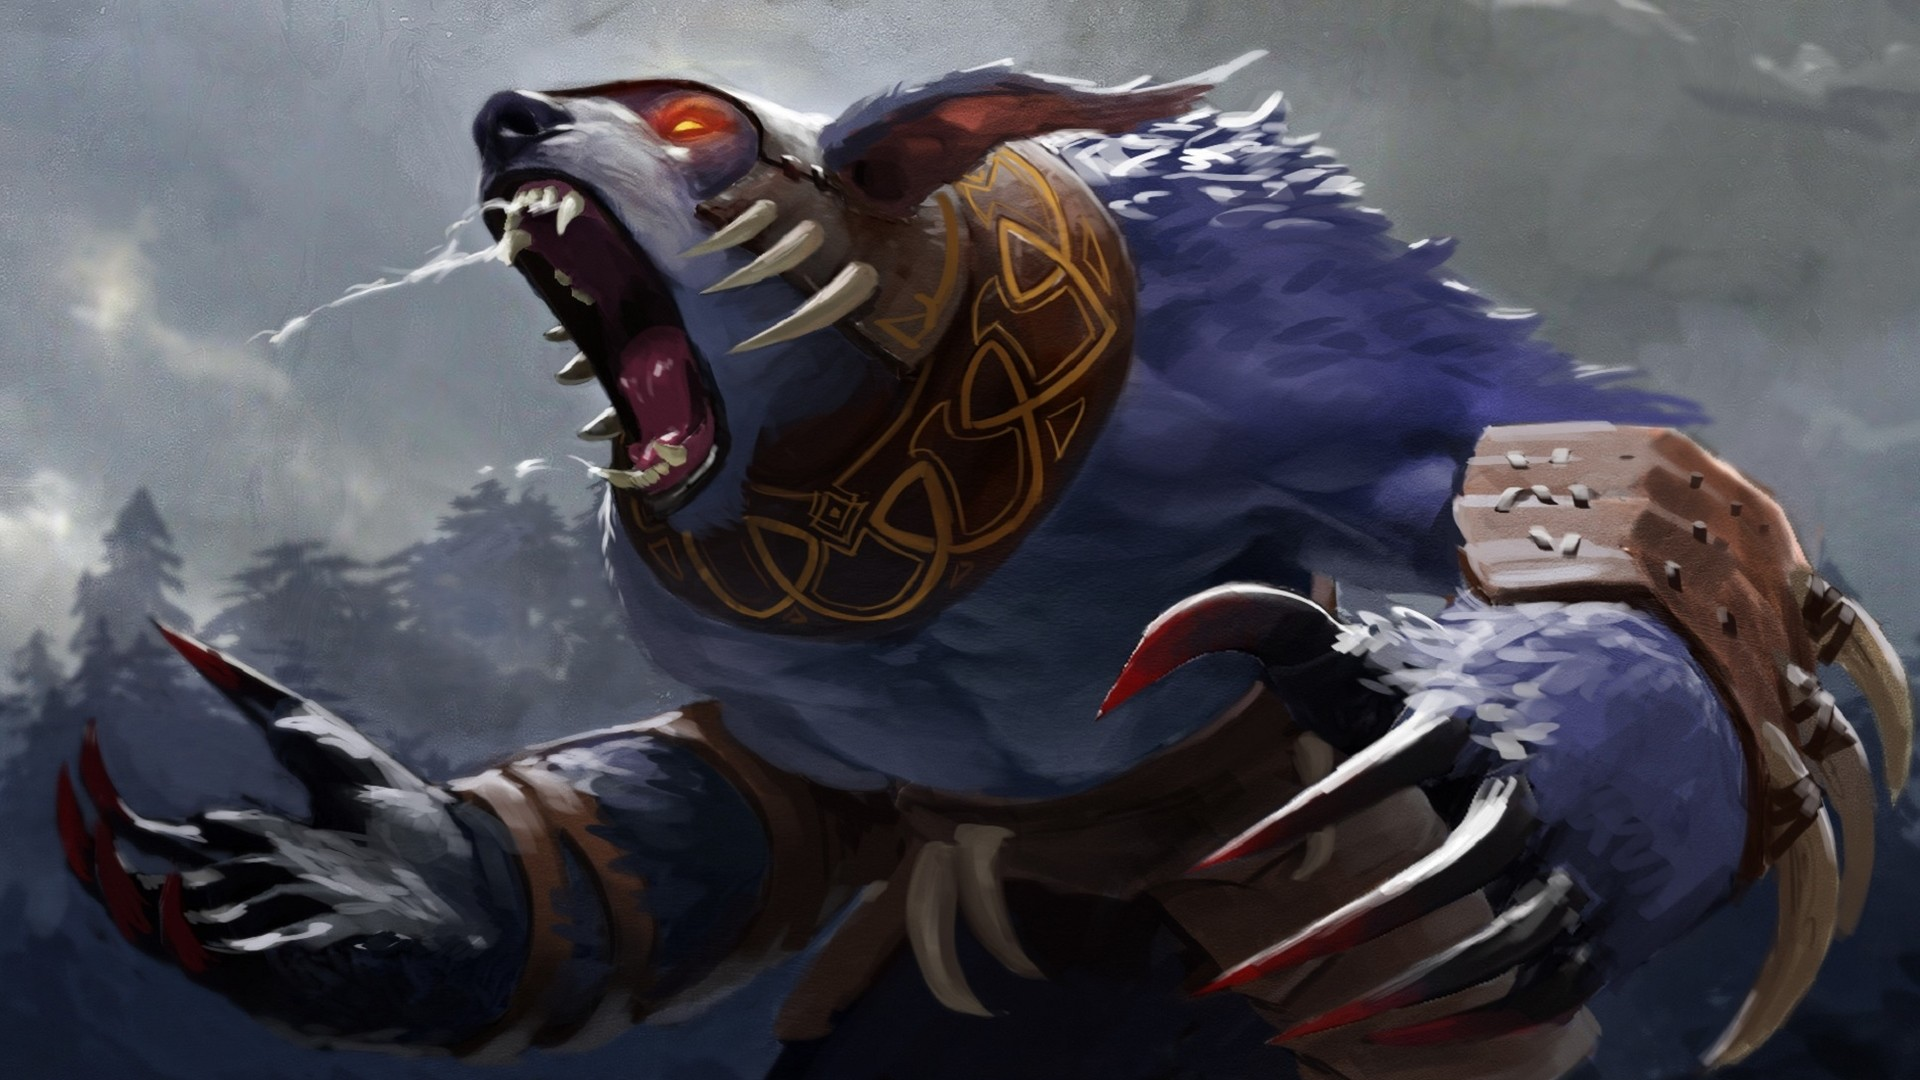 1920x1080  Wallpaper ursa, dota 2, art